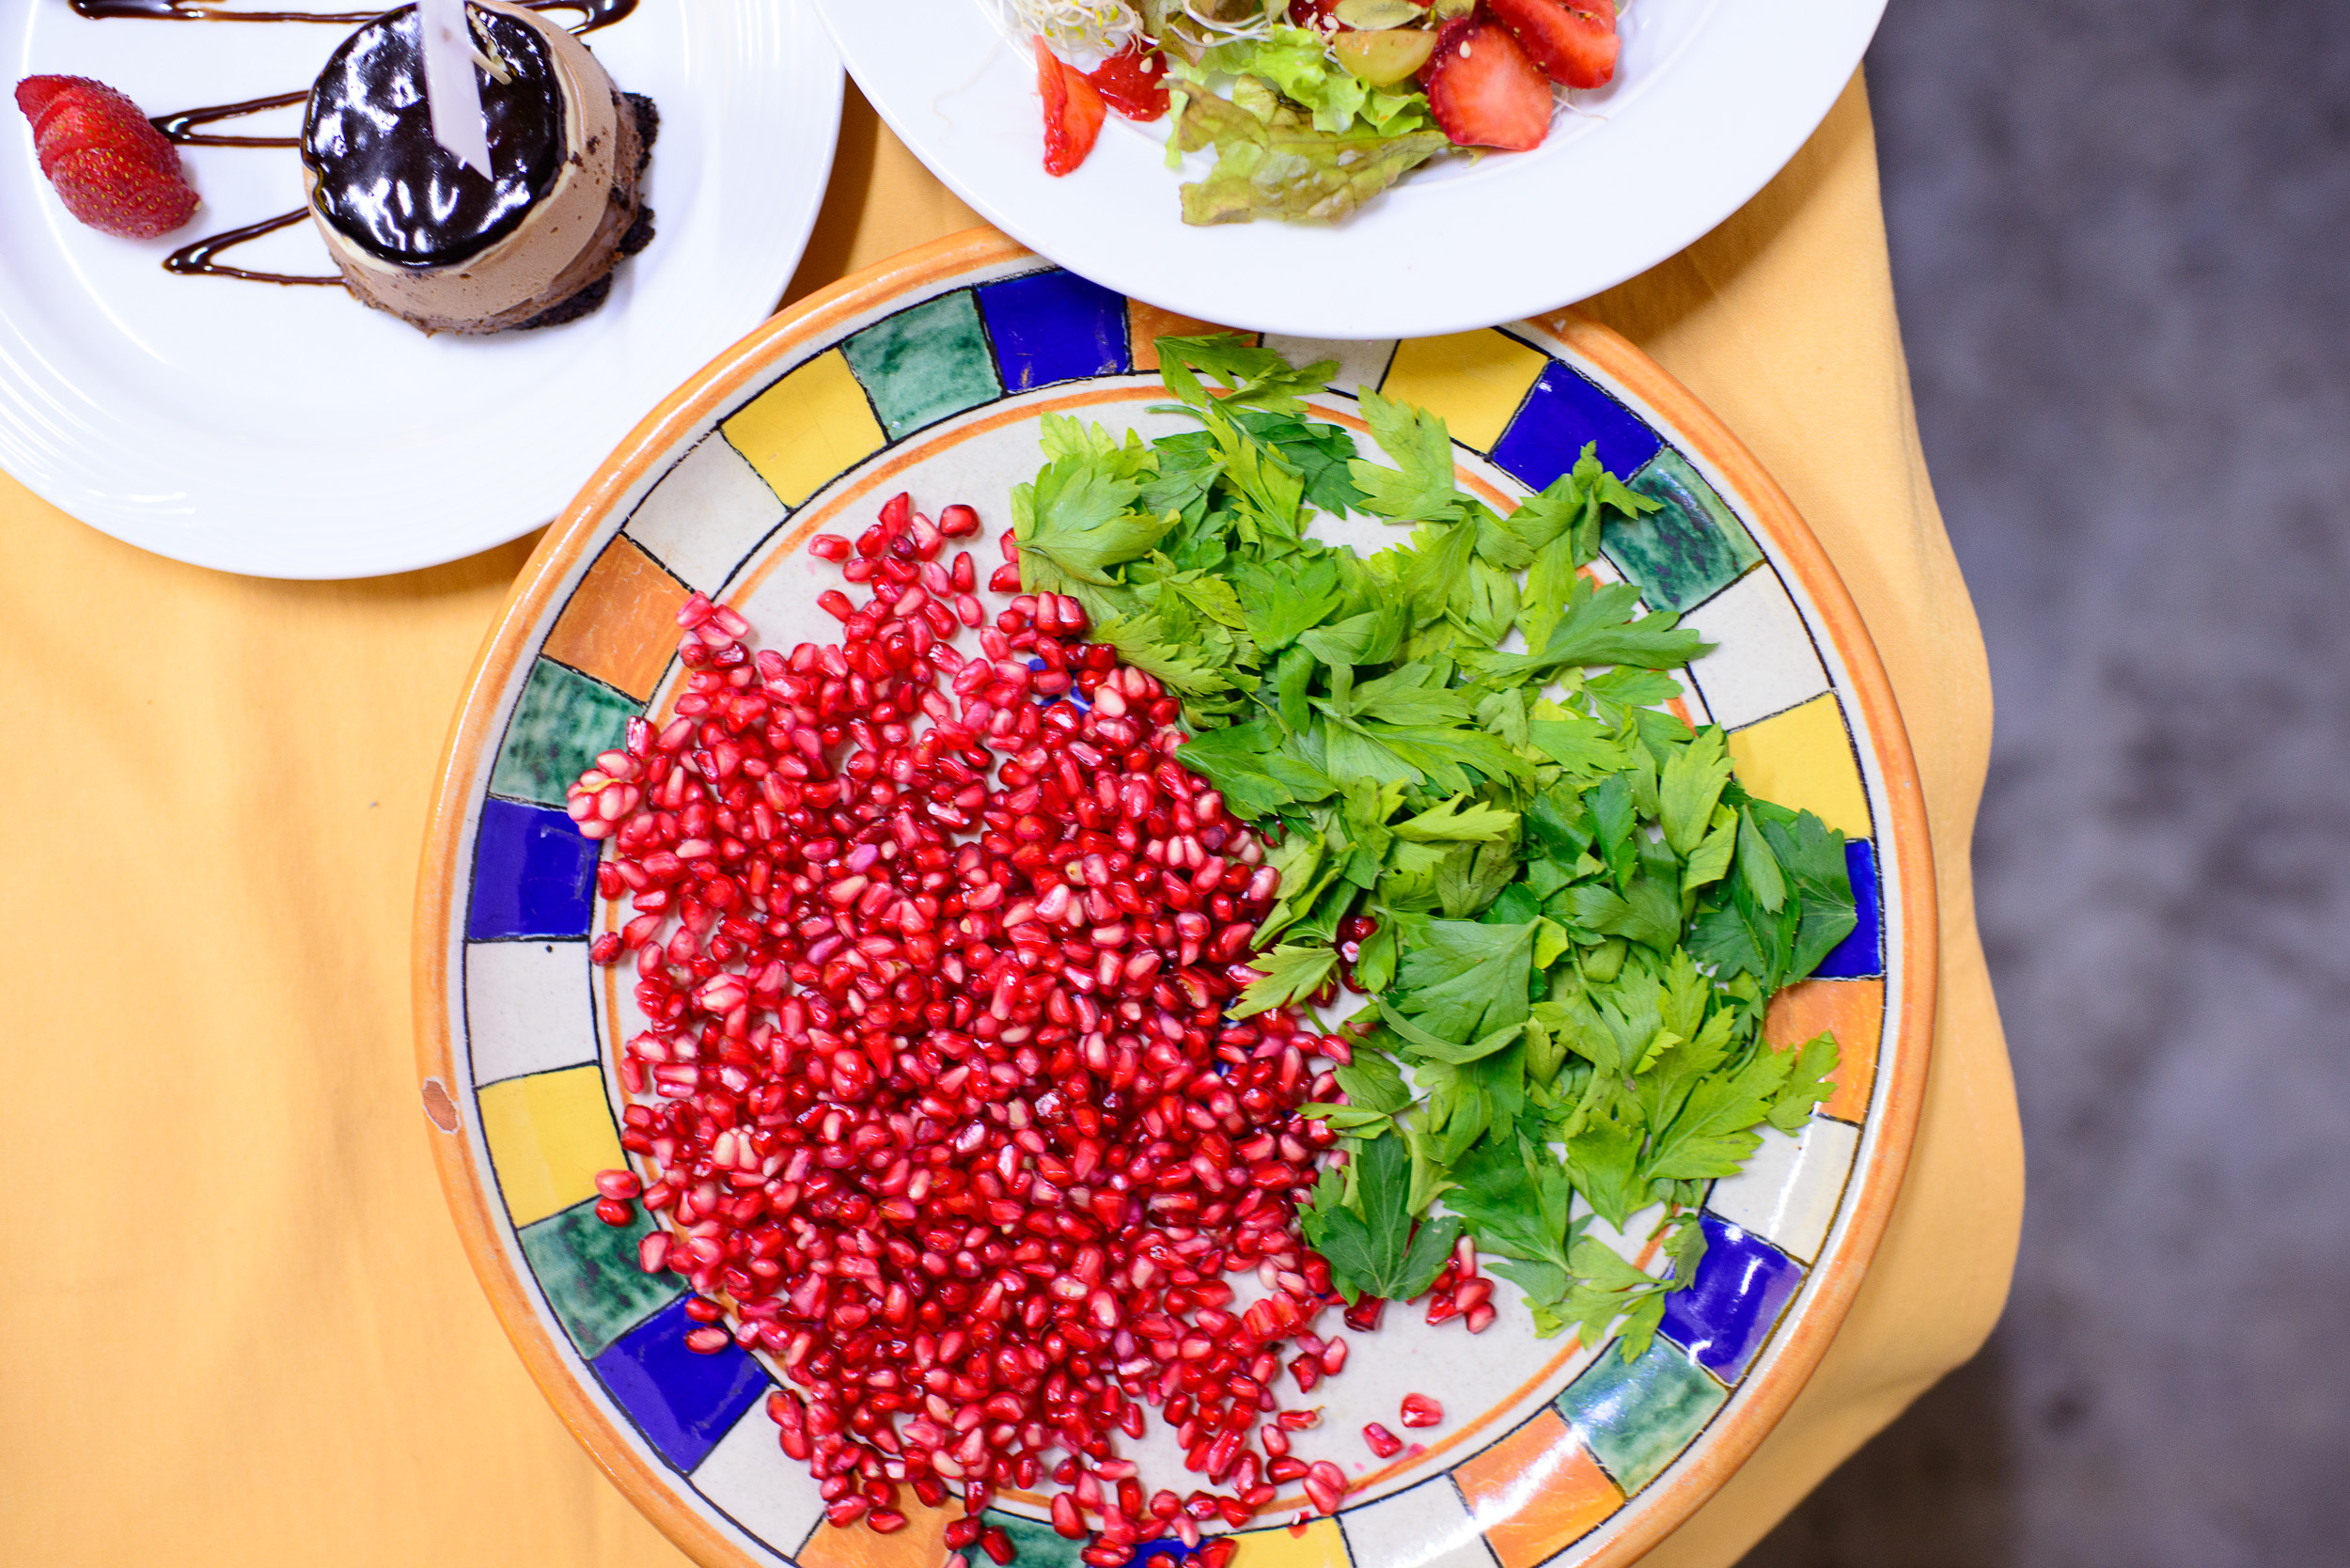 Pomegranate and parsley